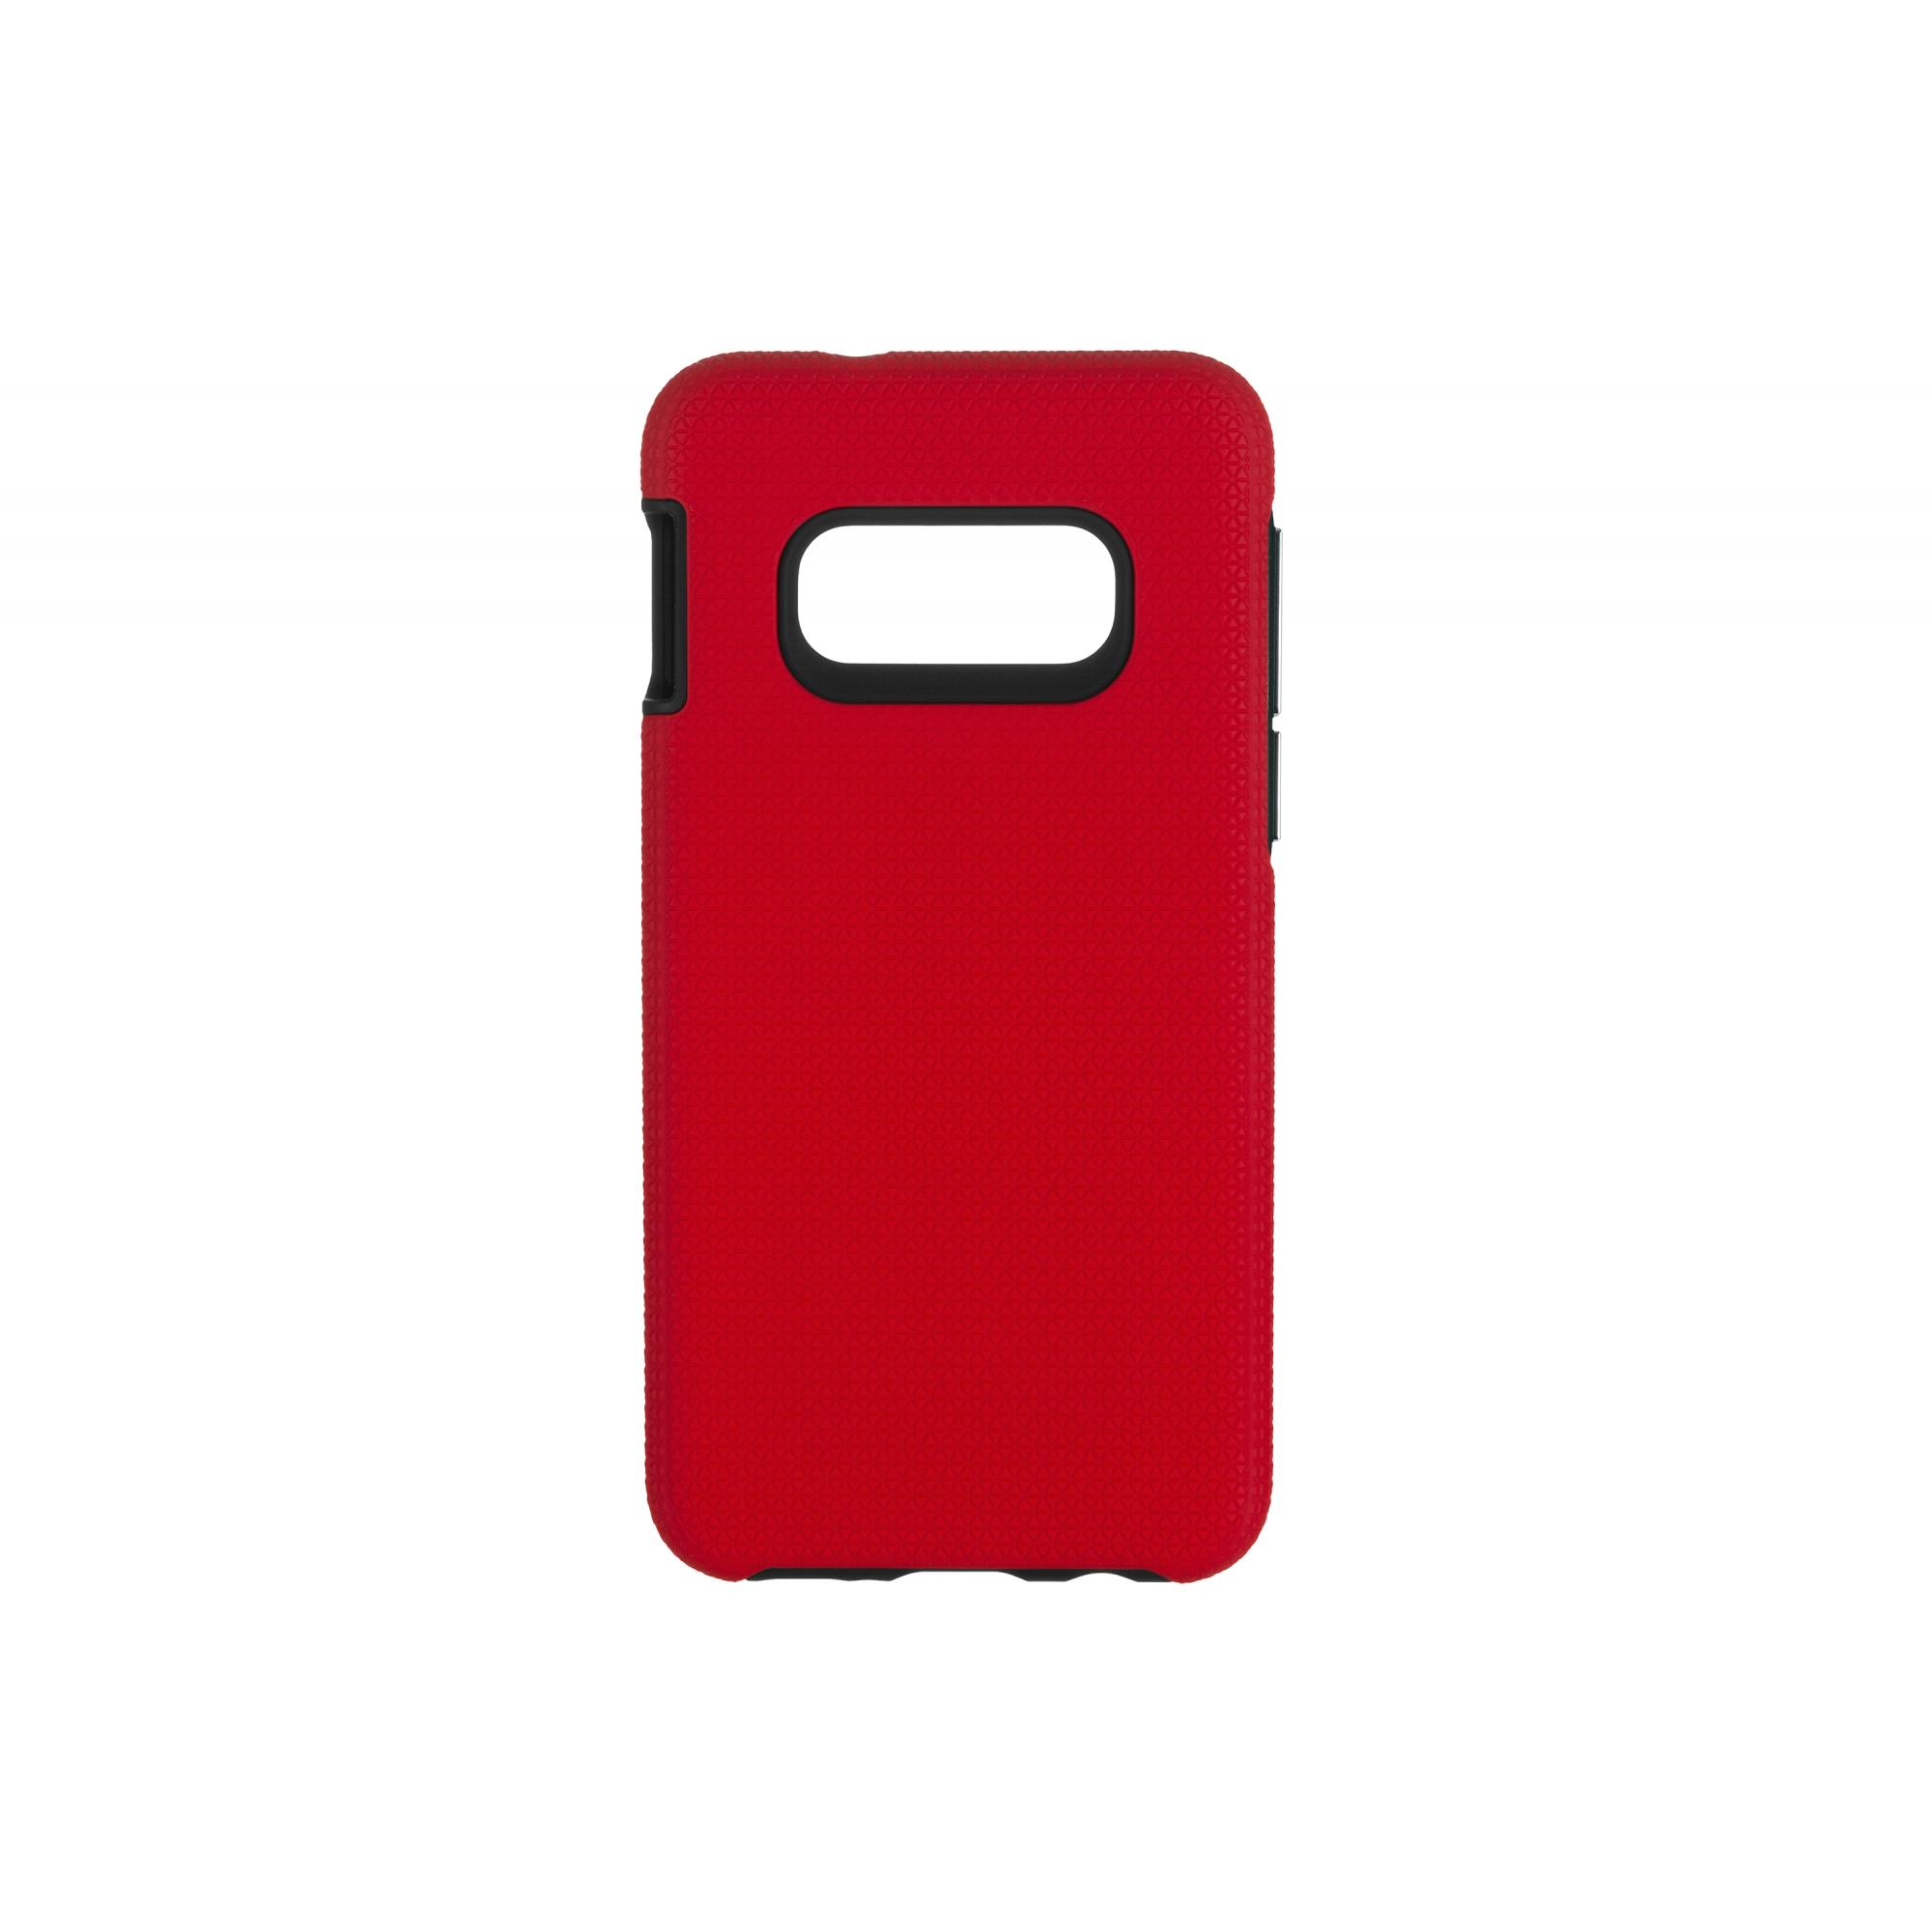 Чехол 2E for Samsung Galaxy S10 Lite, Triangle, Red (2E-G-S10L-TKTLRD)